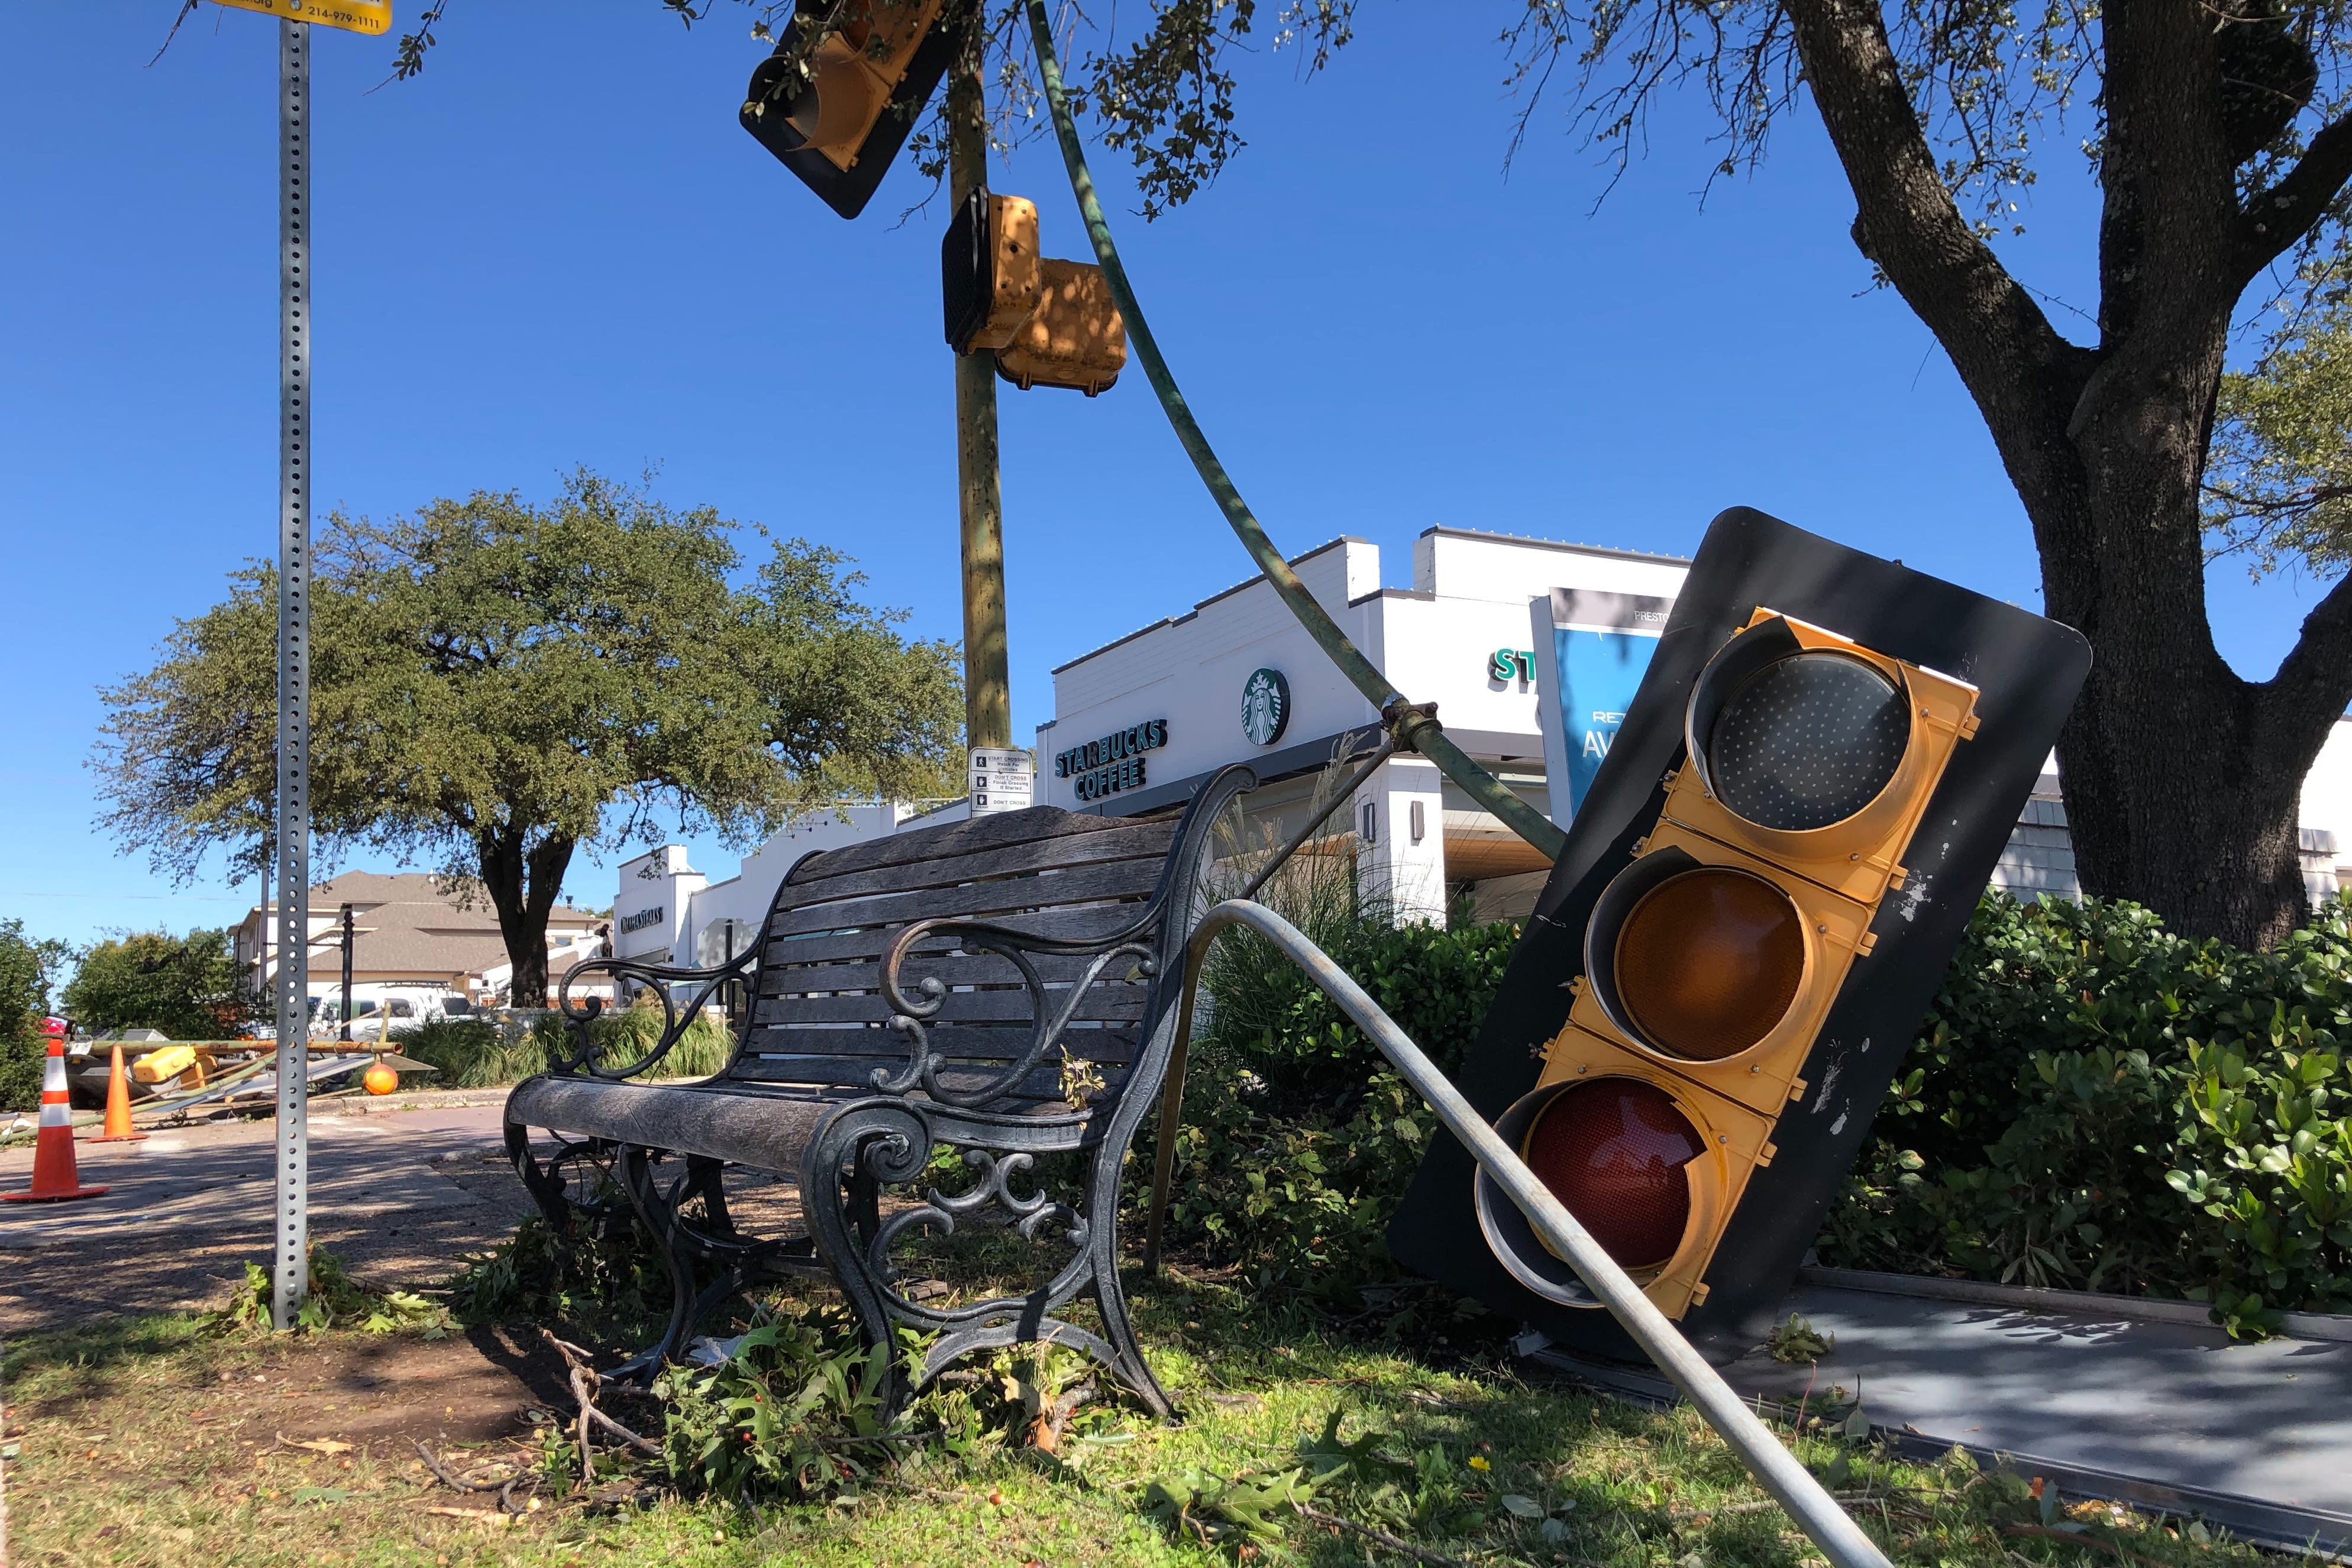 A traffic light rests at a major intersection in the Preston Hollow section of Dallas Monday, Oct. 21, 2019 after a tornado tore homes and businesses apart in a densely populated area of Dallas Sunday night. (AP Photo/Jake Bleiberg)